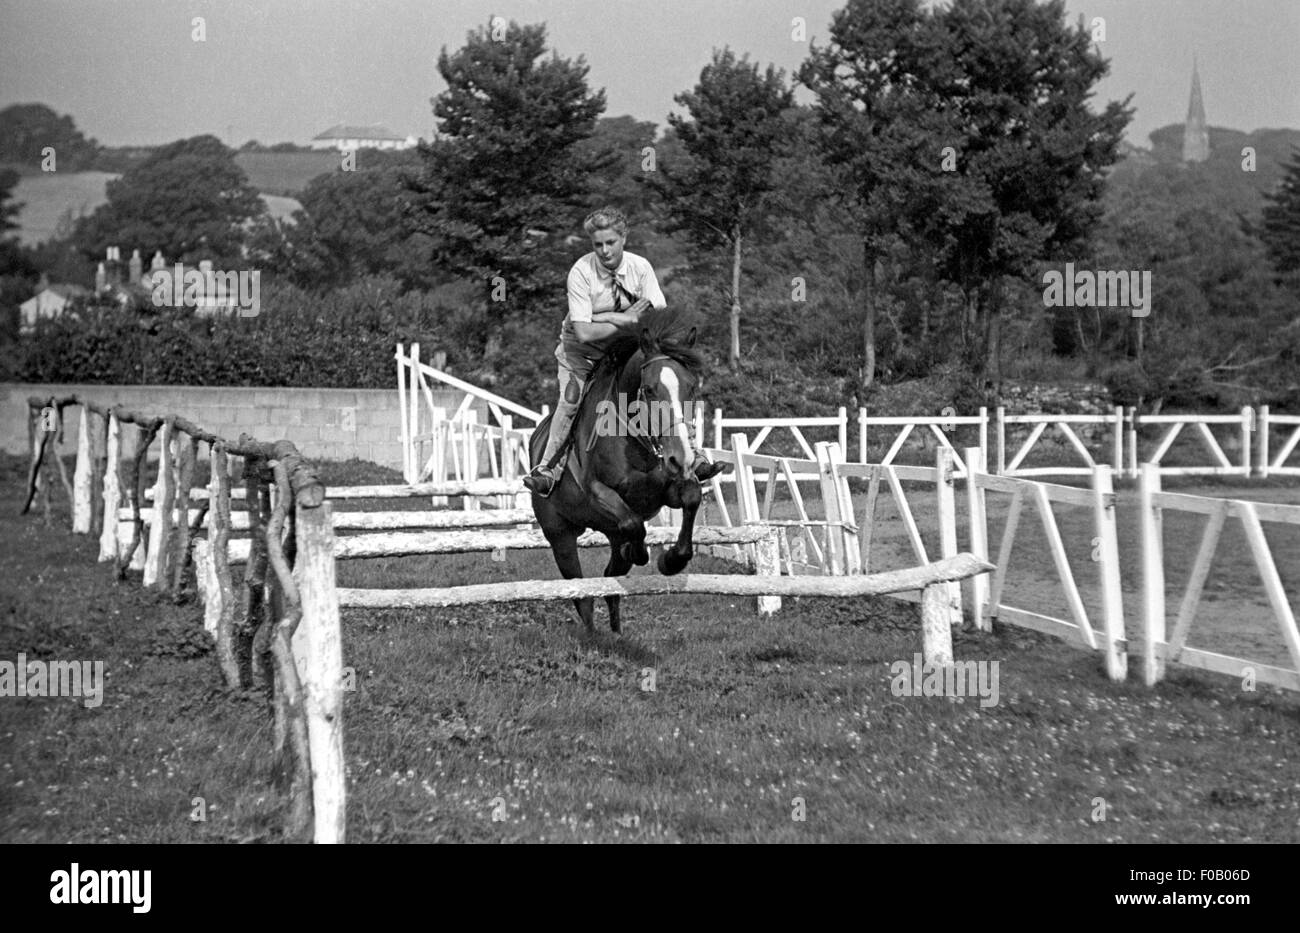 A teenage girl practicing showjumping - Stock Image